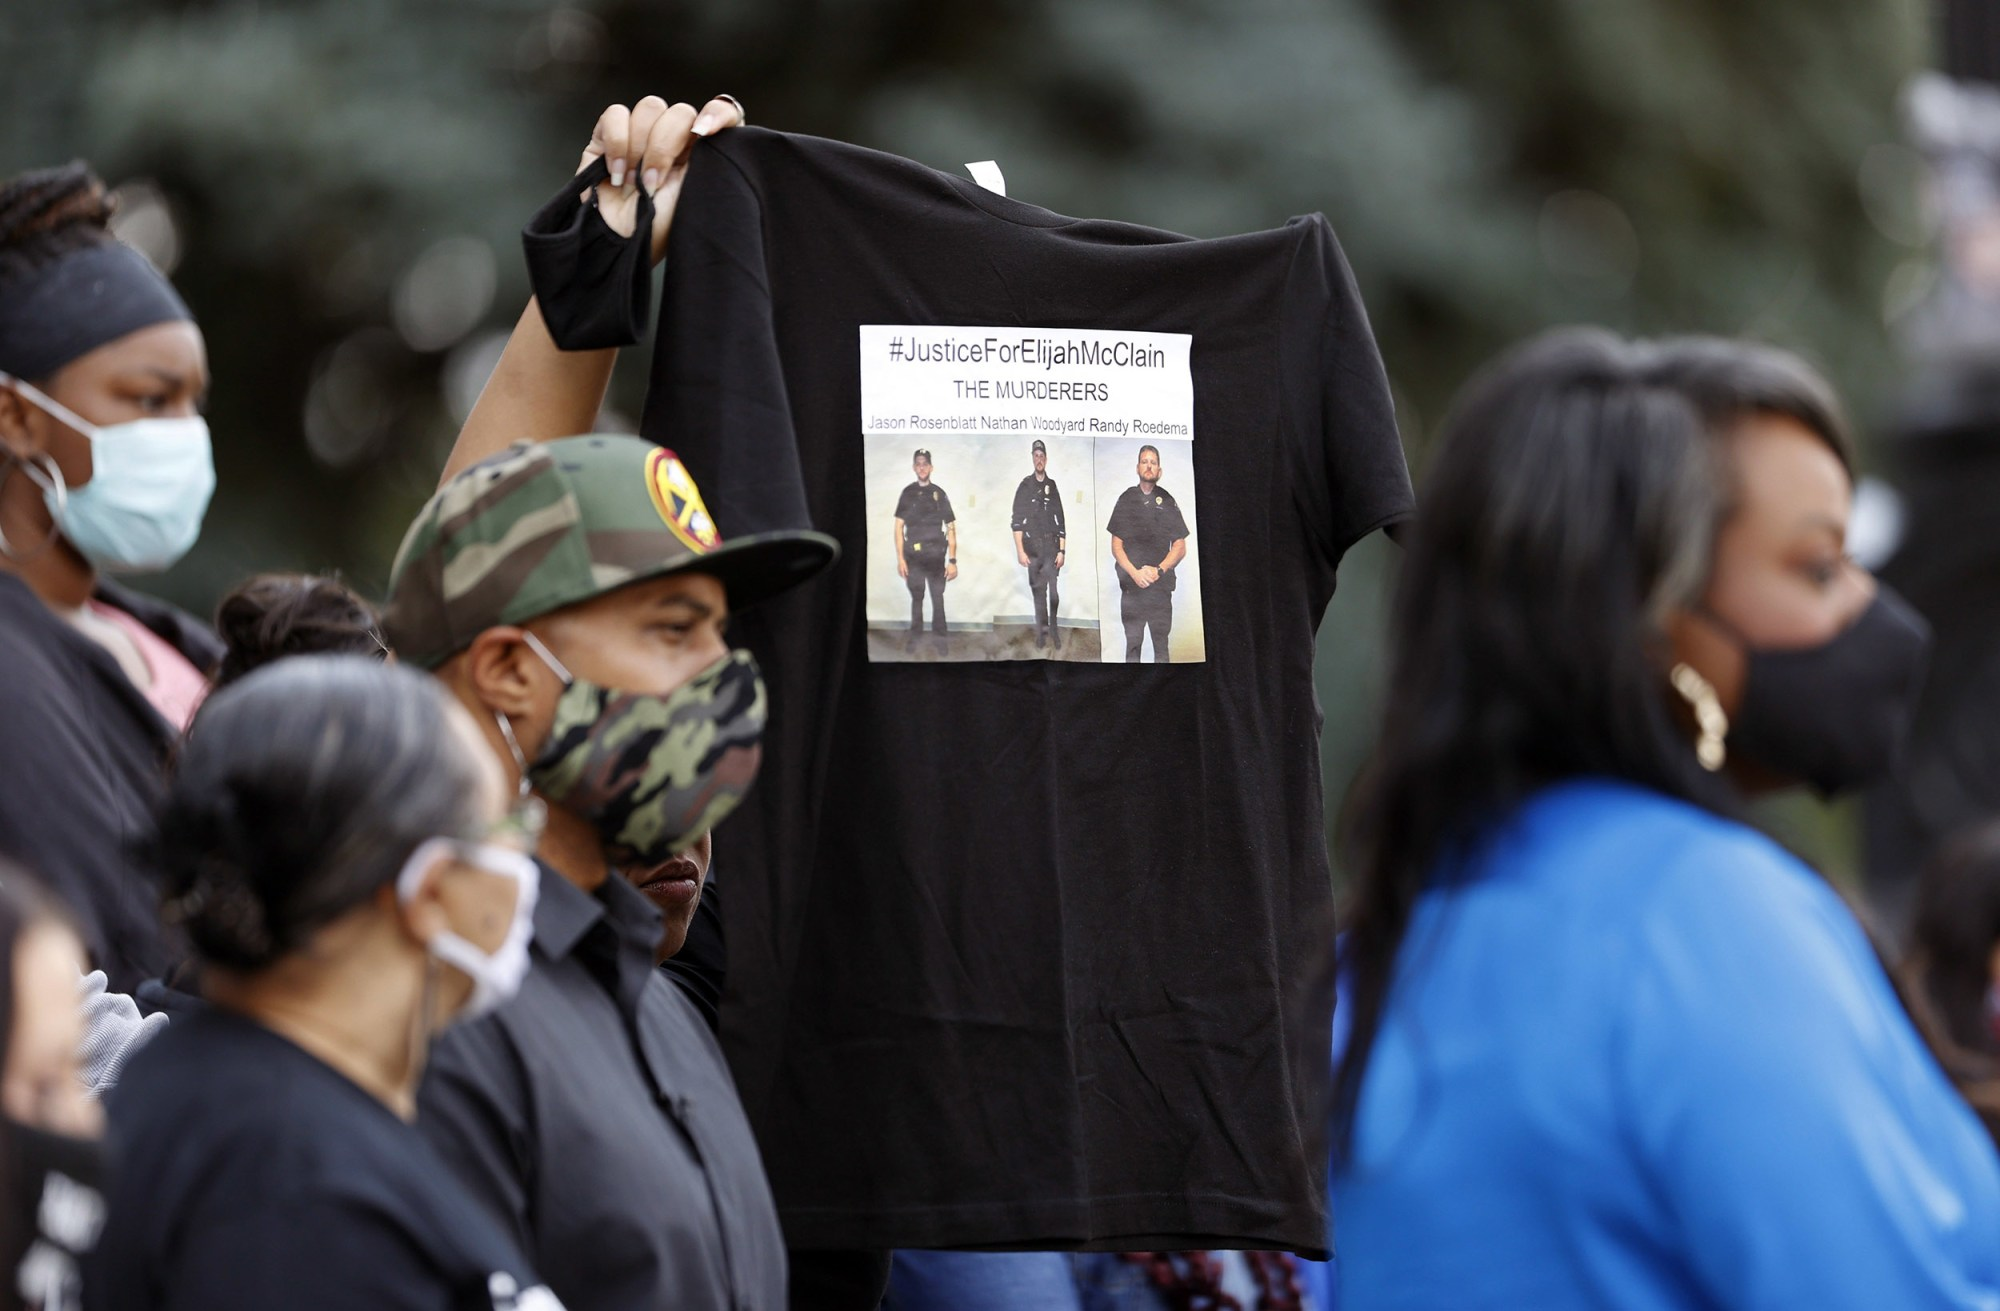 Thousands protest for 23 yr old Black Man Elijah Mcclain who died in police custody